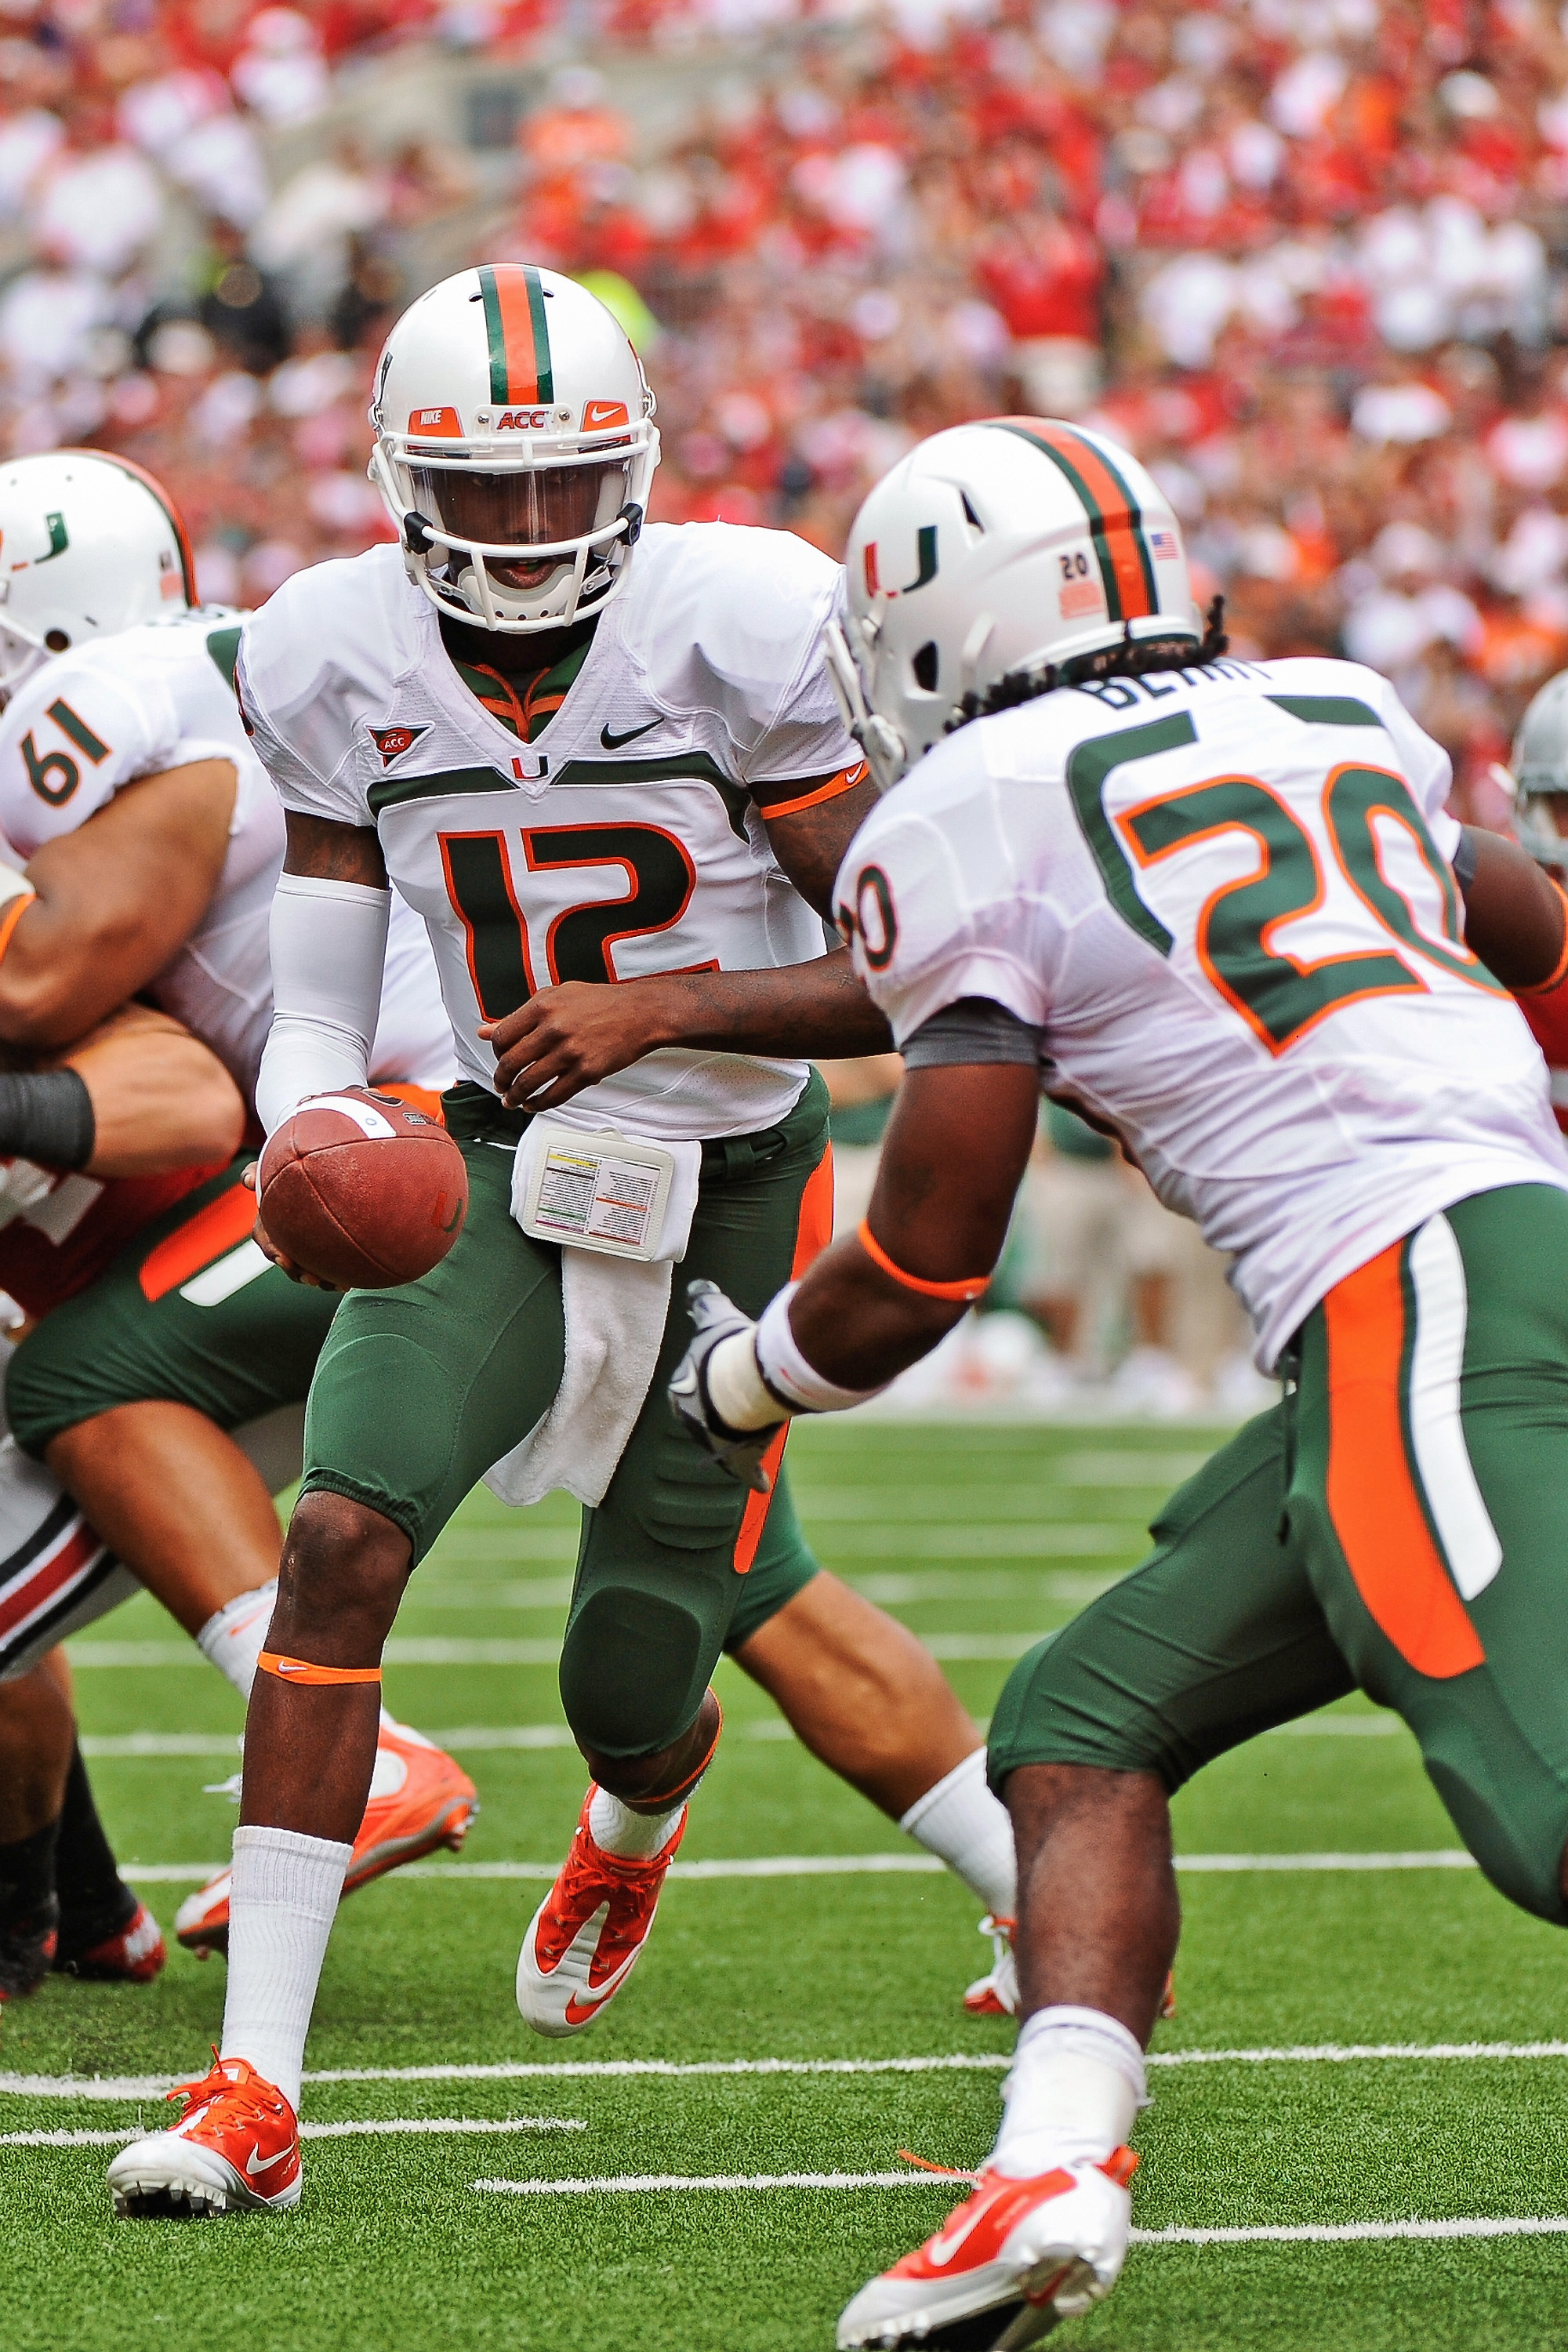 COLUMBUS, OH - SEPTEMBER 11:  Quarterback Jacory Harris #12 of the Miami Hurricanes hands the ball off to a running back against the Ohio State Buckeyes at Ohio Stadium on September 11, 2010 in Columbus, Ohio.  (Photo by Jamie Sabau/Getty Images)